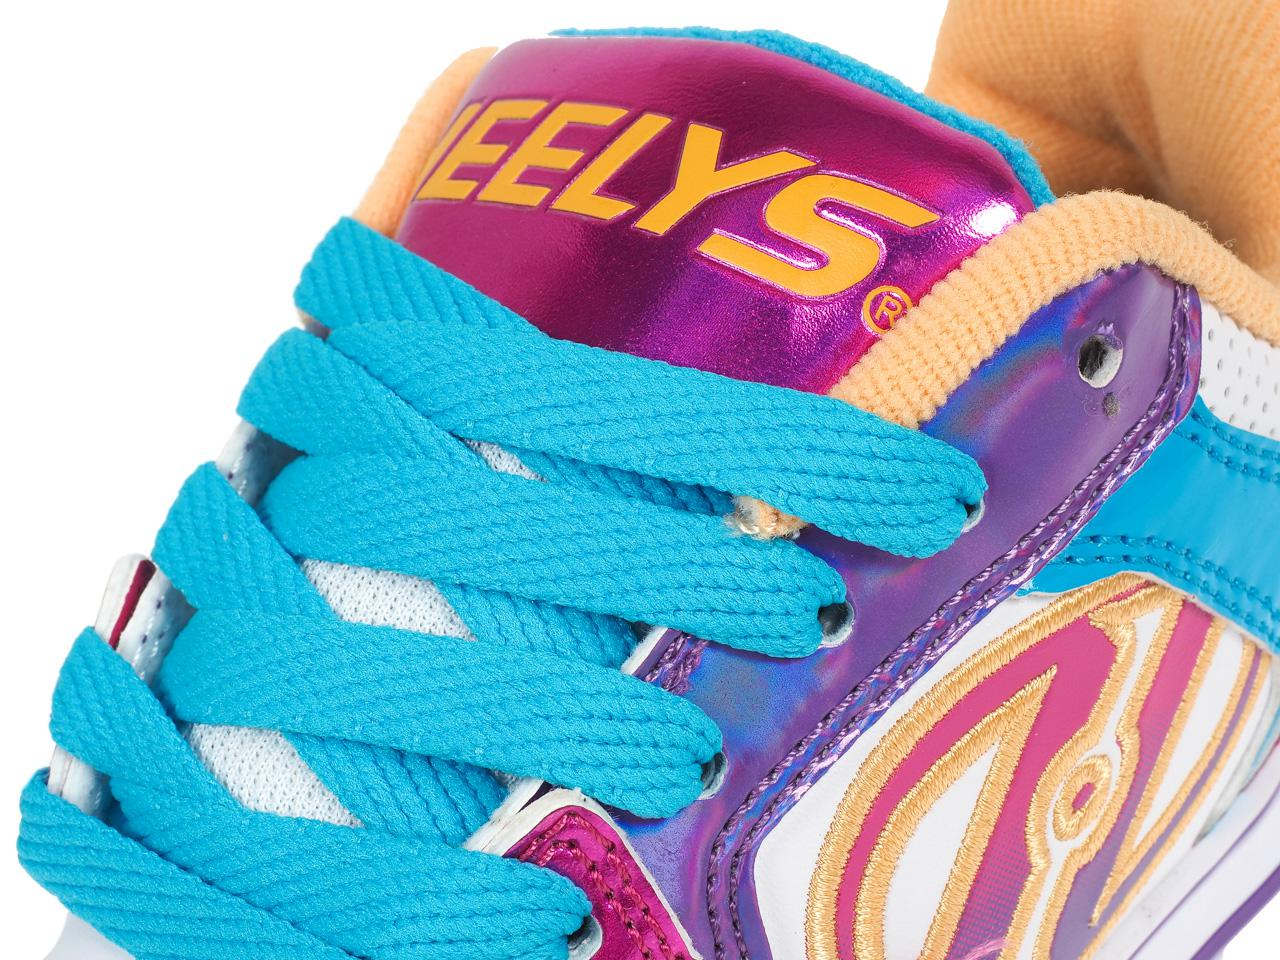 Shoes-to-Casters-Heelys-Motion-More-Fuchsia-White-Pink-11296-New thumbnail 2